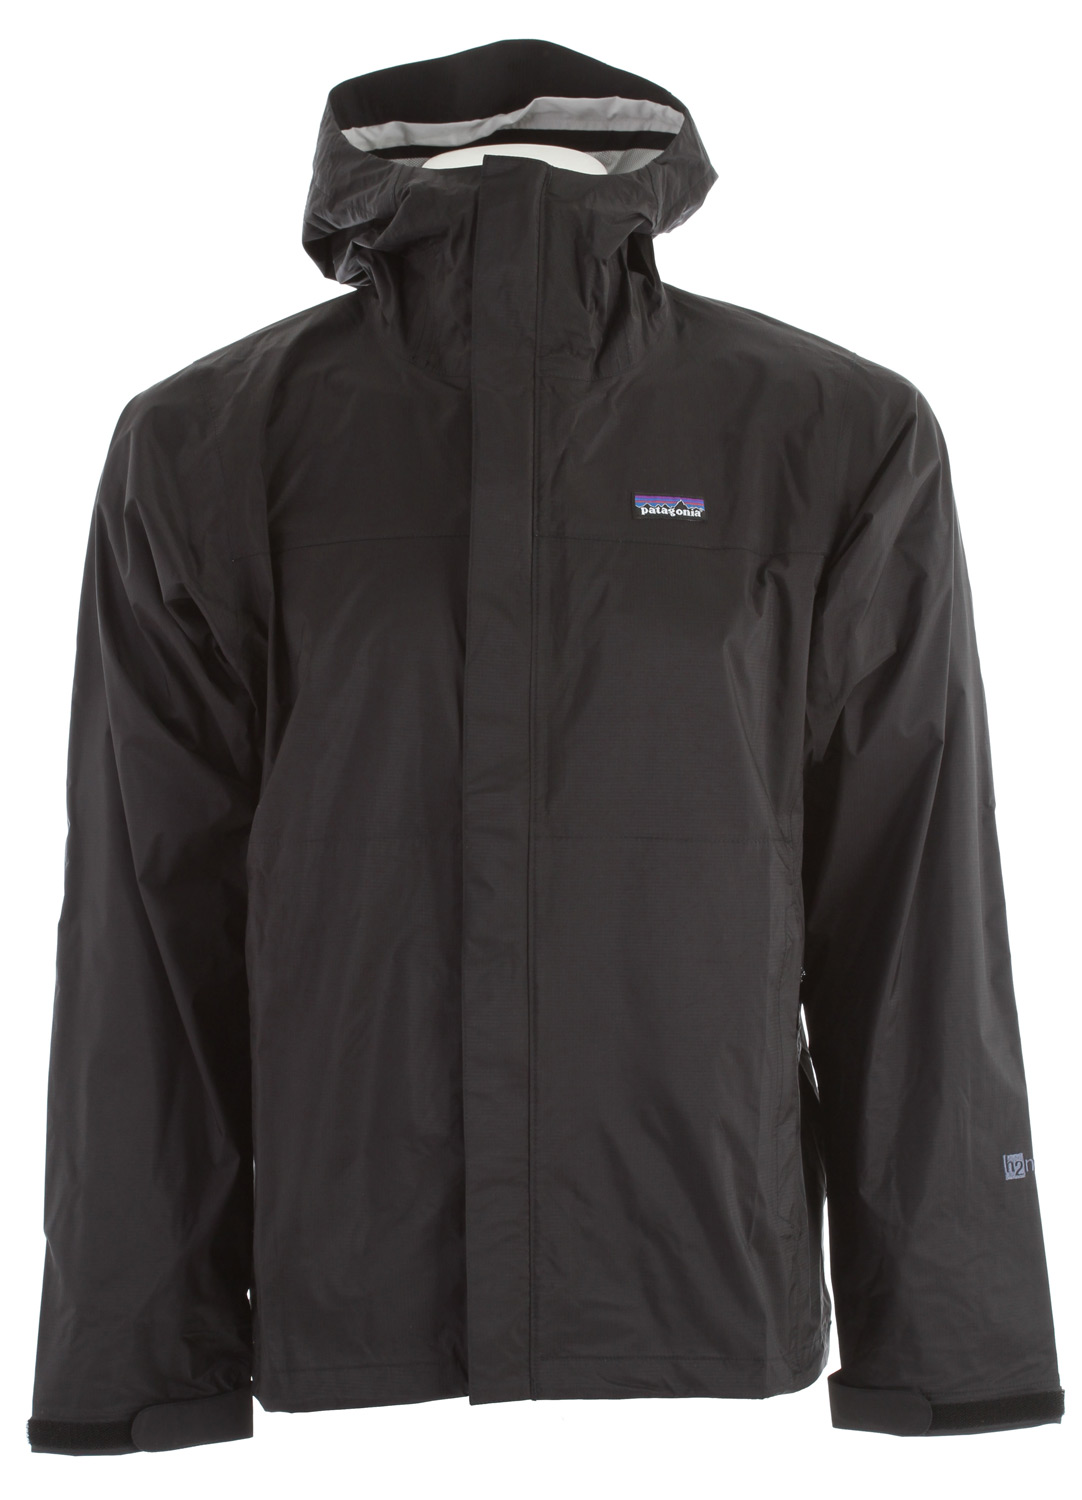 Camp and Hike This durable rain jacket, made with 2.5 layer nylon ripstop and a waterproof/breathable H2No barrier is built for trekking and hiking in wet conditionsKey Features of the Patagonia Torrentshell Jacket: 2.5-layer nylon ripstop shell with a waterproof/breathable H2No barrier and Deluge DWR (durable water repellent) finish 2-way-adjustable hood with a laminated visor rolls down and stows Microfleece-lined neck for comfort and enhanced protection of waterproof/breathable barrier Center-front-zipper has exterior and interior storm flaps to keep water out; pit zips have storm flaps and Deluge DWR-treated zippers Self-fabric hook-and-loop cuff closures Pockets: Two handwarmers; one internal mesh drop-in; stows in left hand pocket Drawcord hem Regular fit (13.1 oz) 371 g Fabric: 2.5-layer, 2.6-oz 50-denier 100% nylon ripstop with a waterproof/breathable H2No barrier and a Deluge DWR finish - $89.95